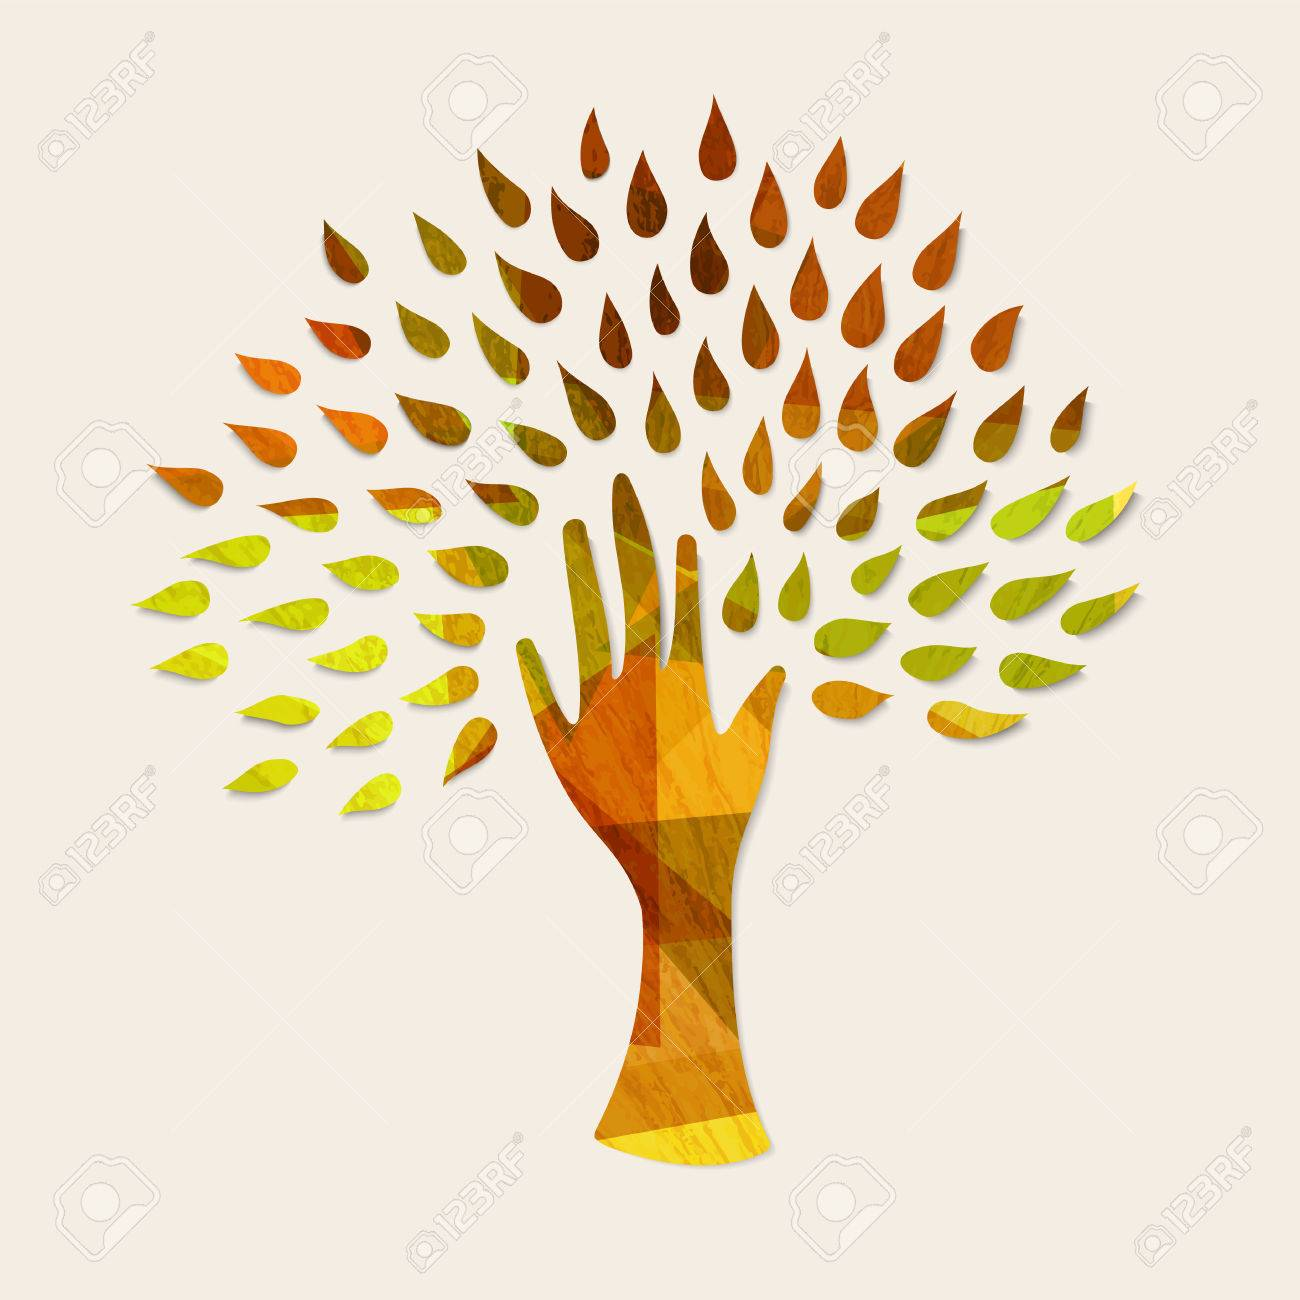 hand tree art with